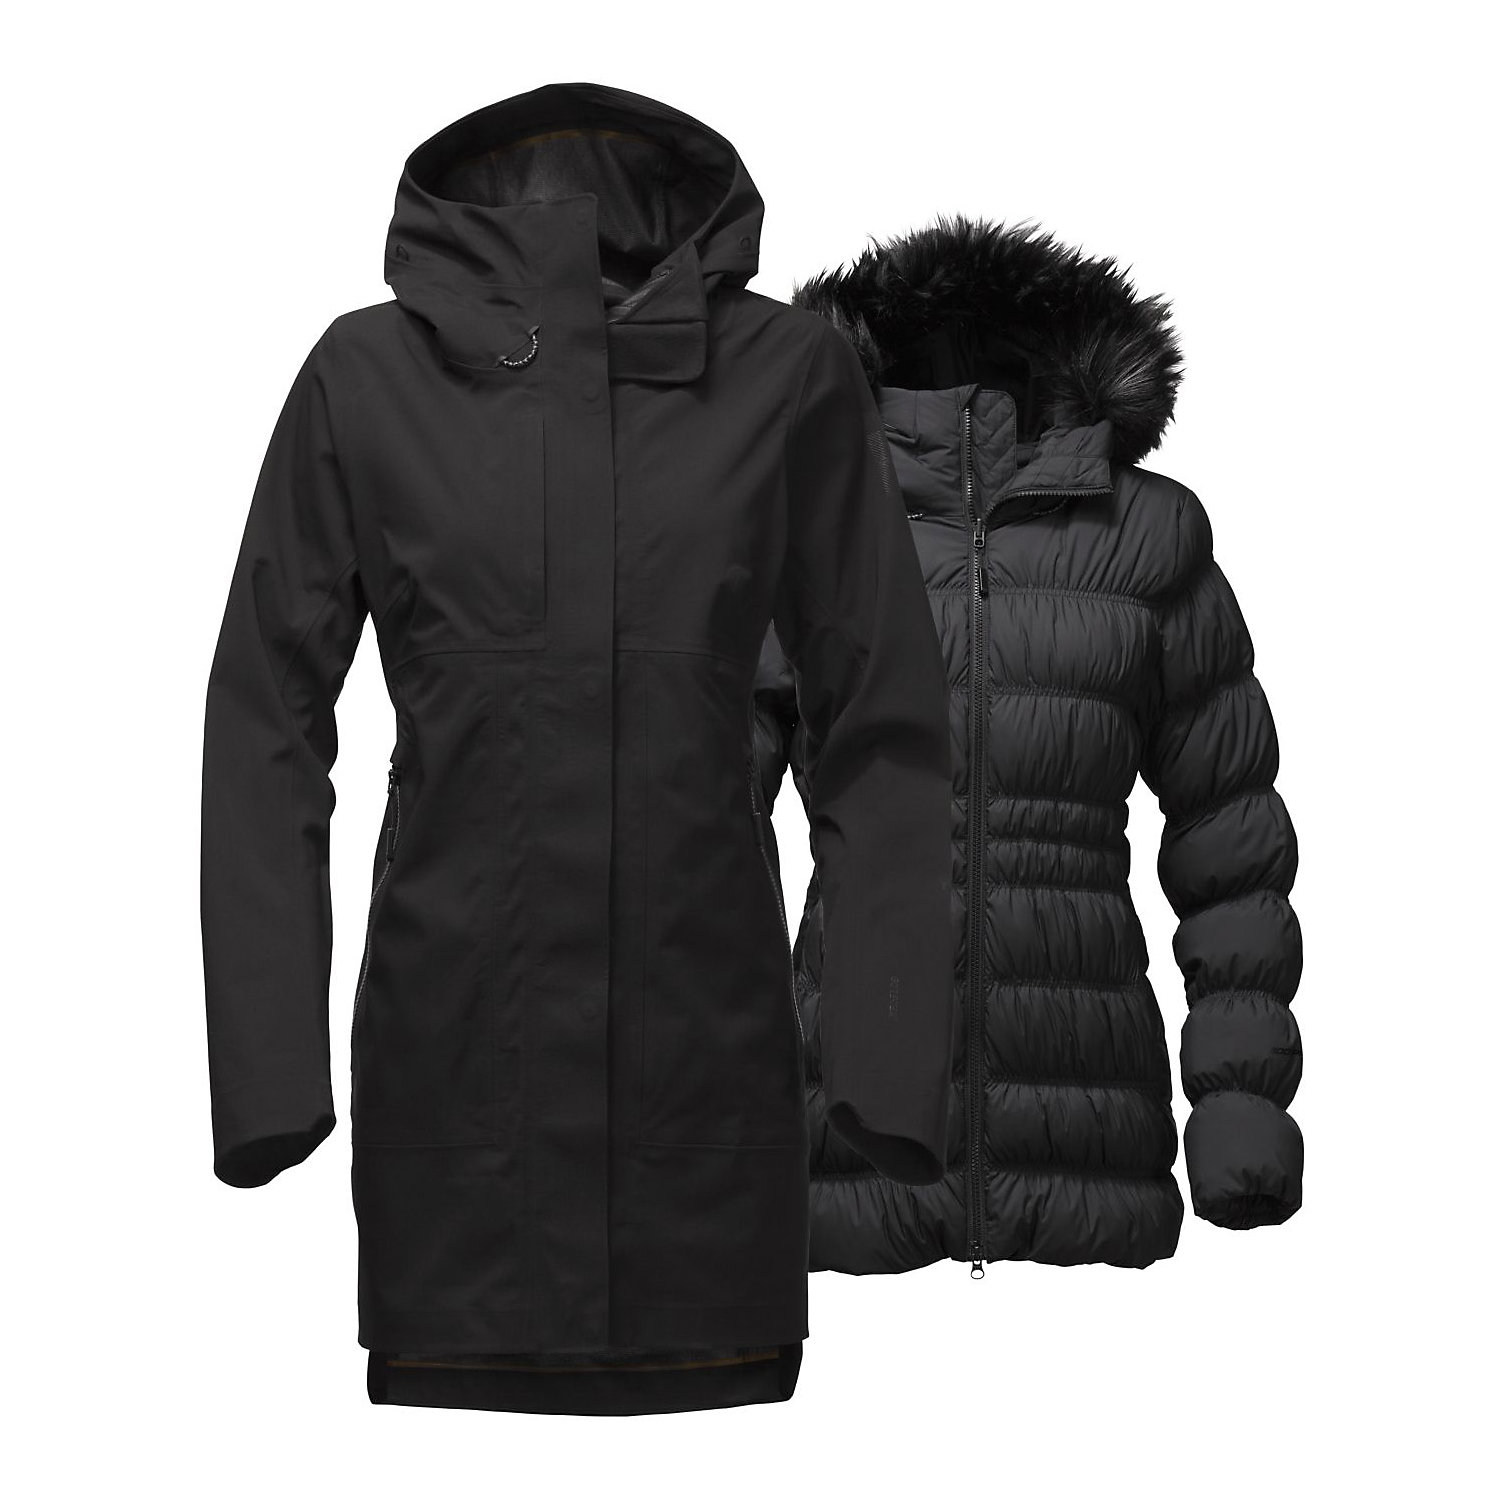 fe3578f29 The North Face Women's Cryos GTX Triclimate Jacket